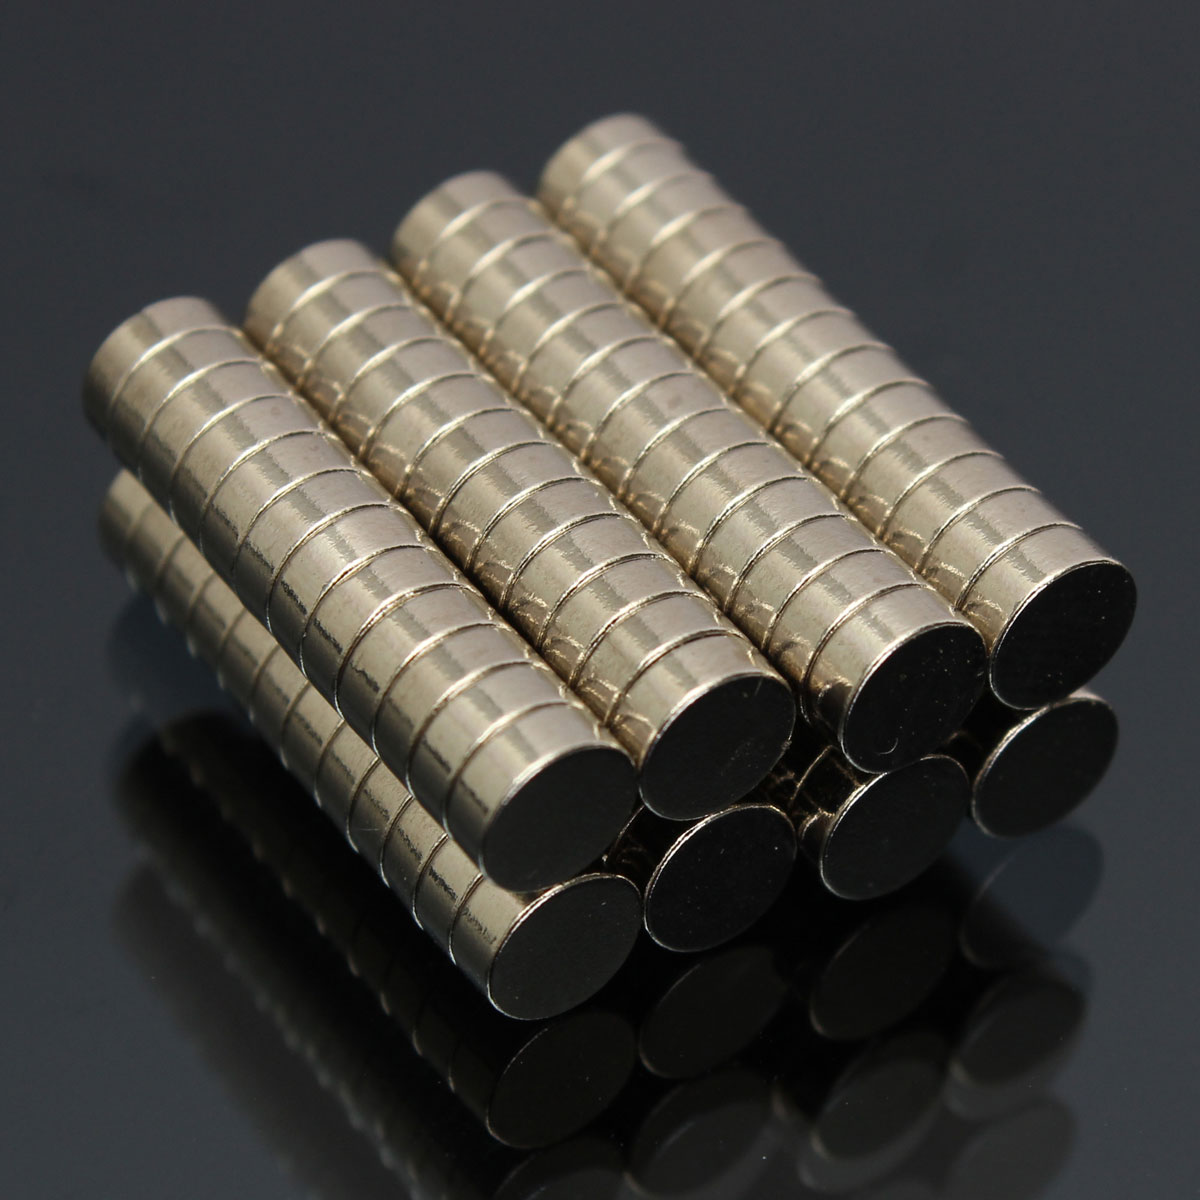 100pcs 5mmx2mm N52 Strong Round Magnets Rare Earth NdFeB Neodymium Magnet